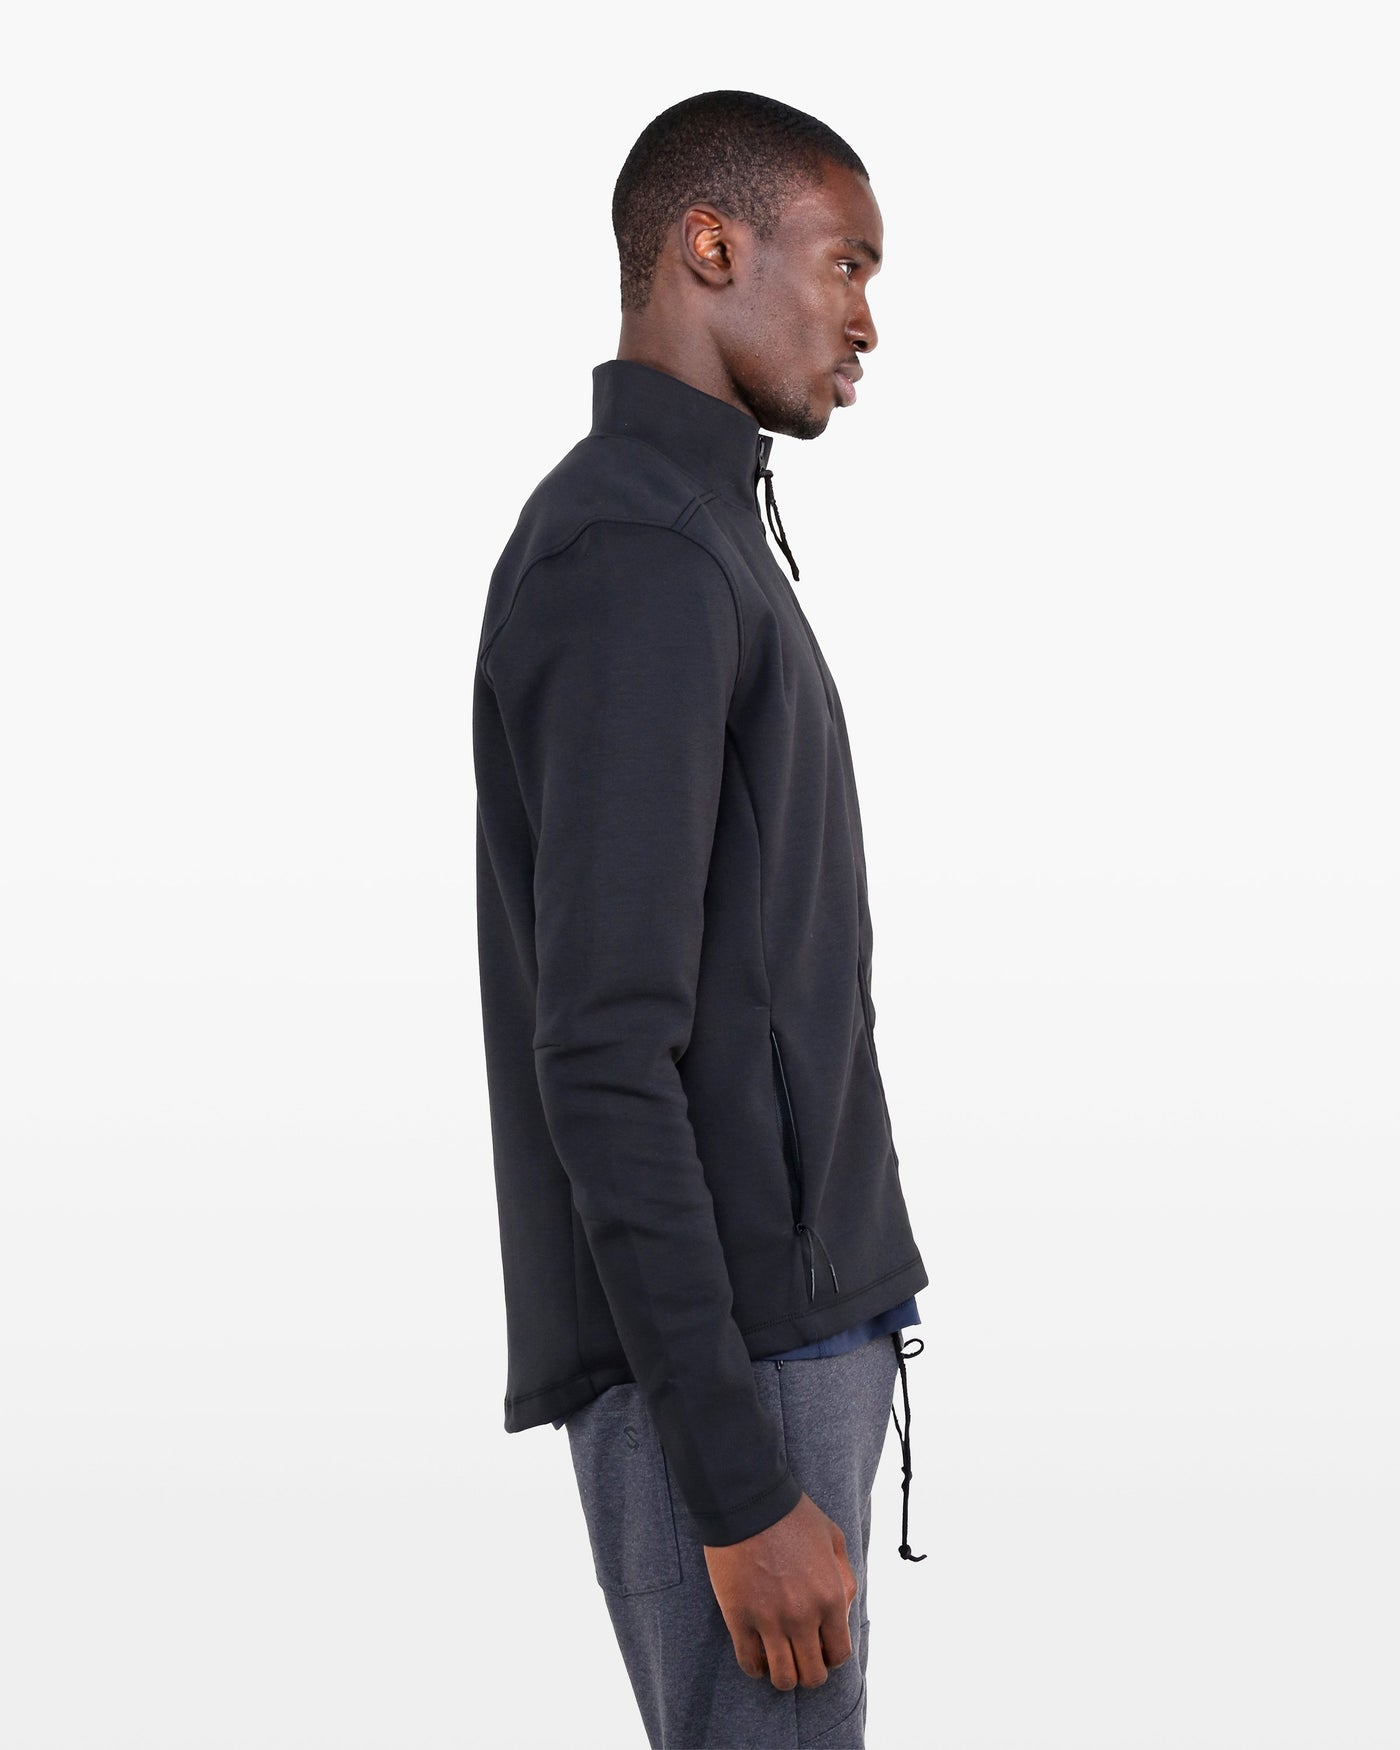 Descartes Jacket SUP in black